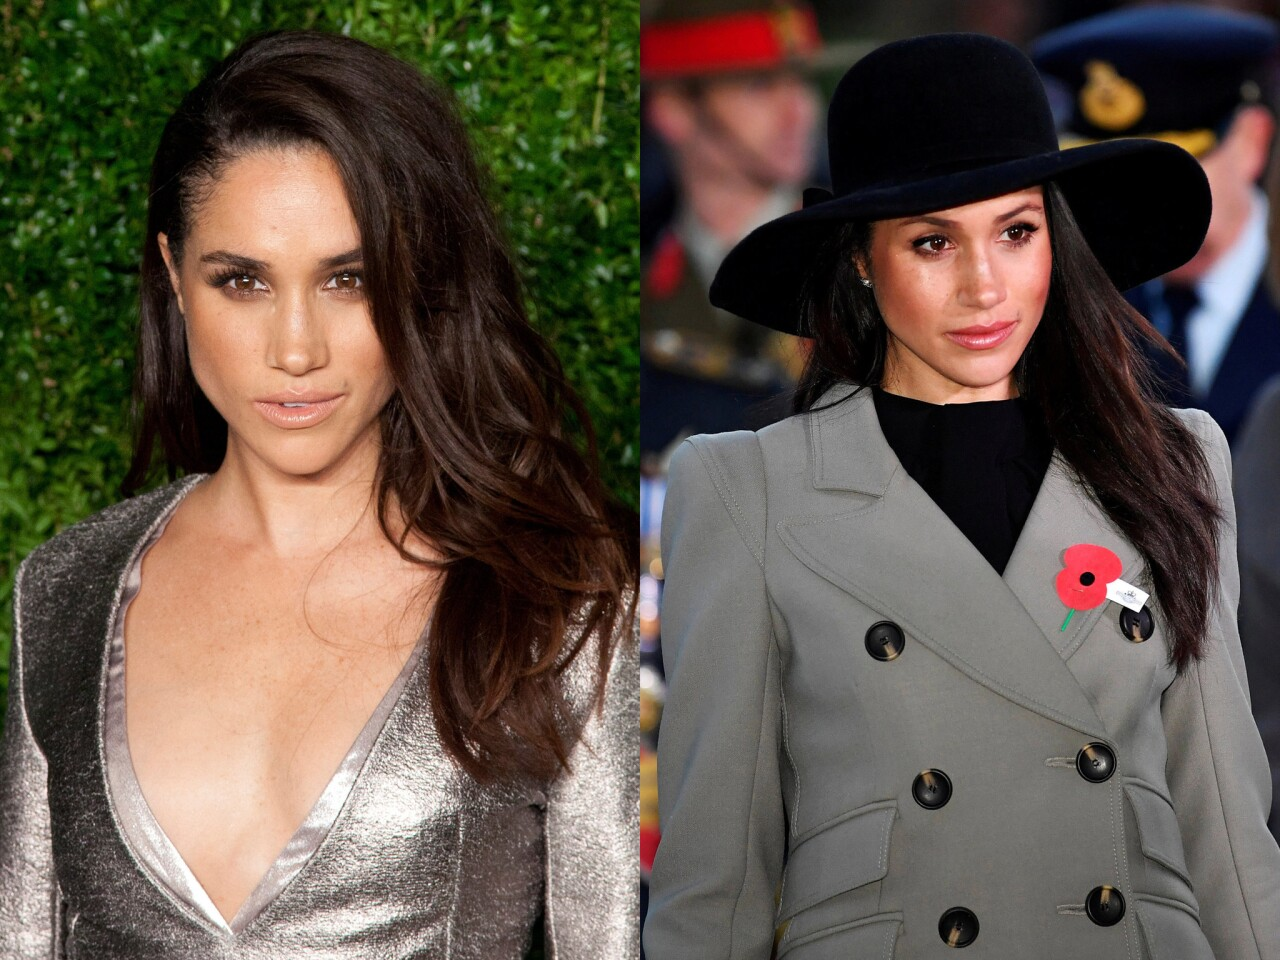 From actress to princess: The style transformation of Meghan Markle